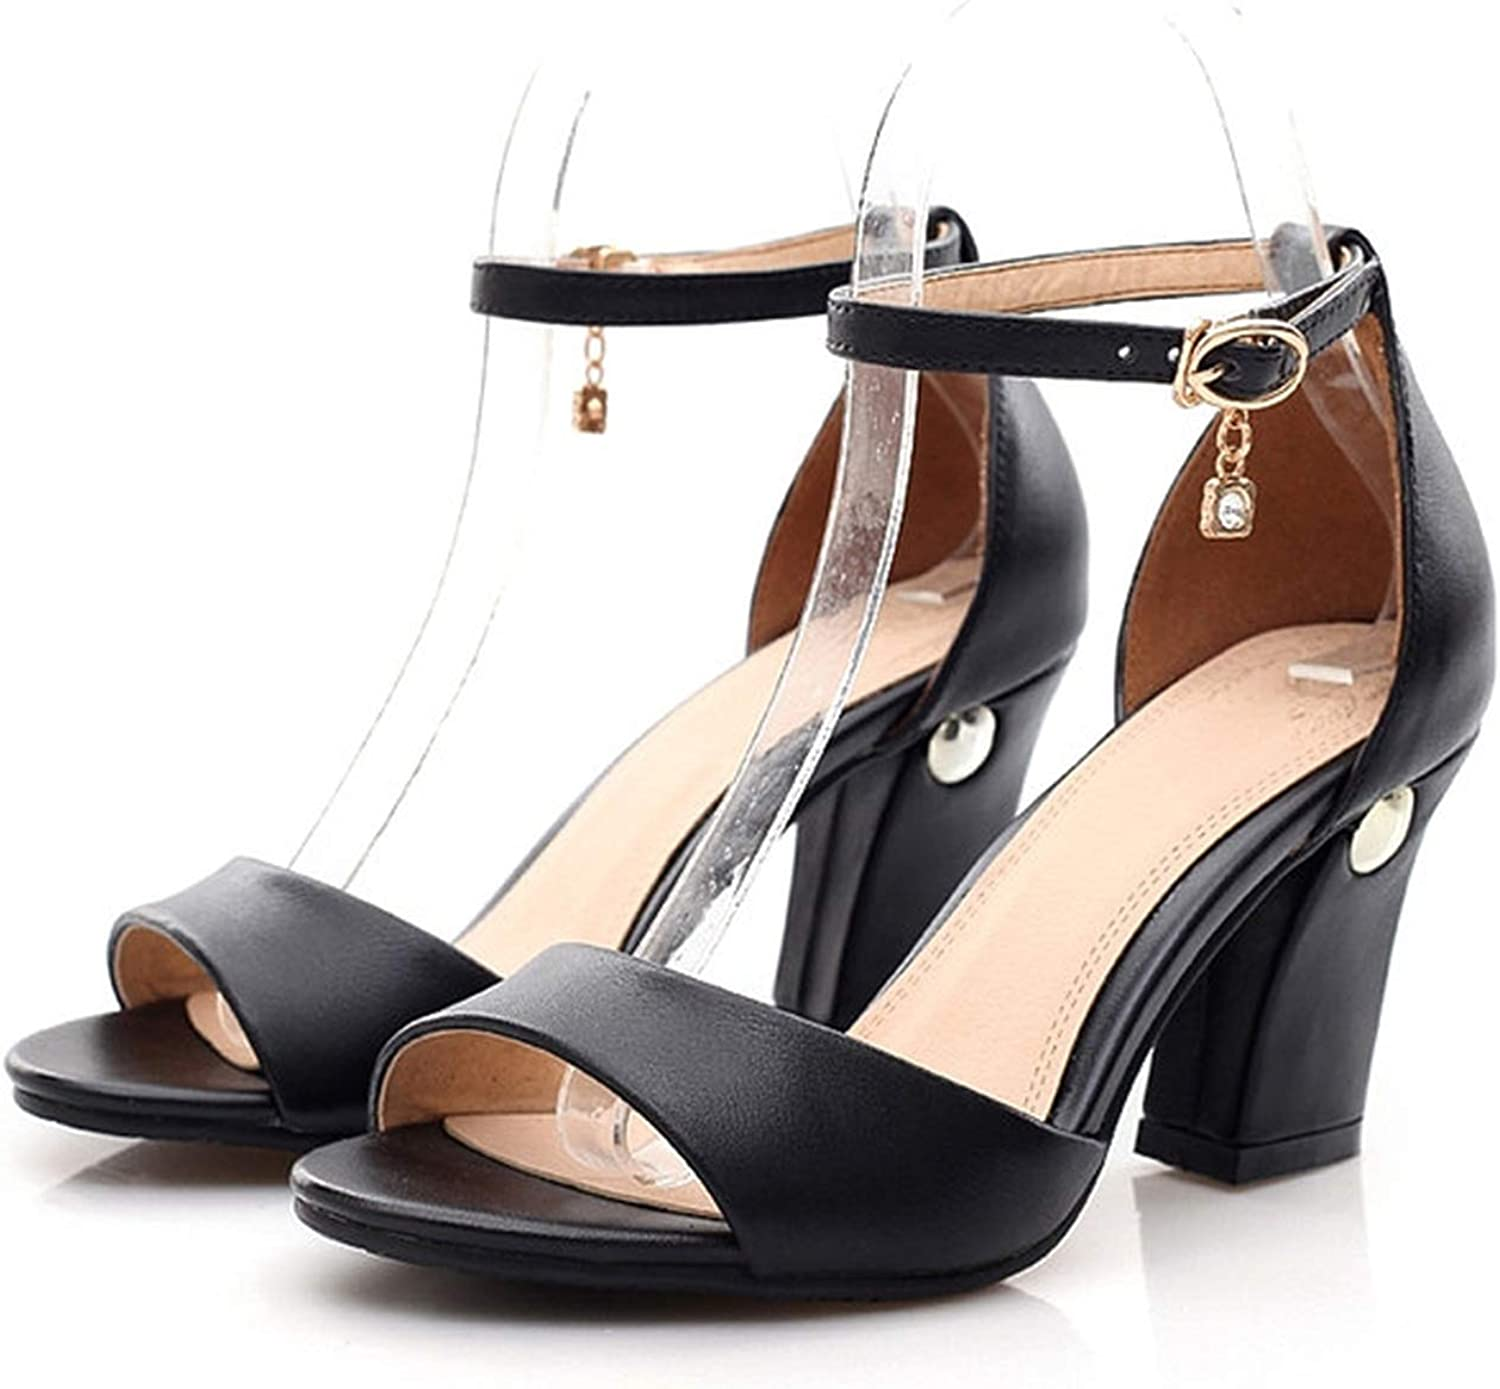 YuJi Genuine Leather High Heel Sandals Ankle Strap High Heels Party shoes Thick Heel Pumps,Black,4